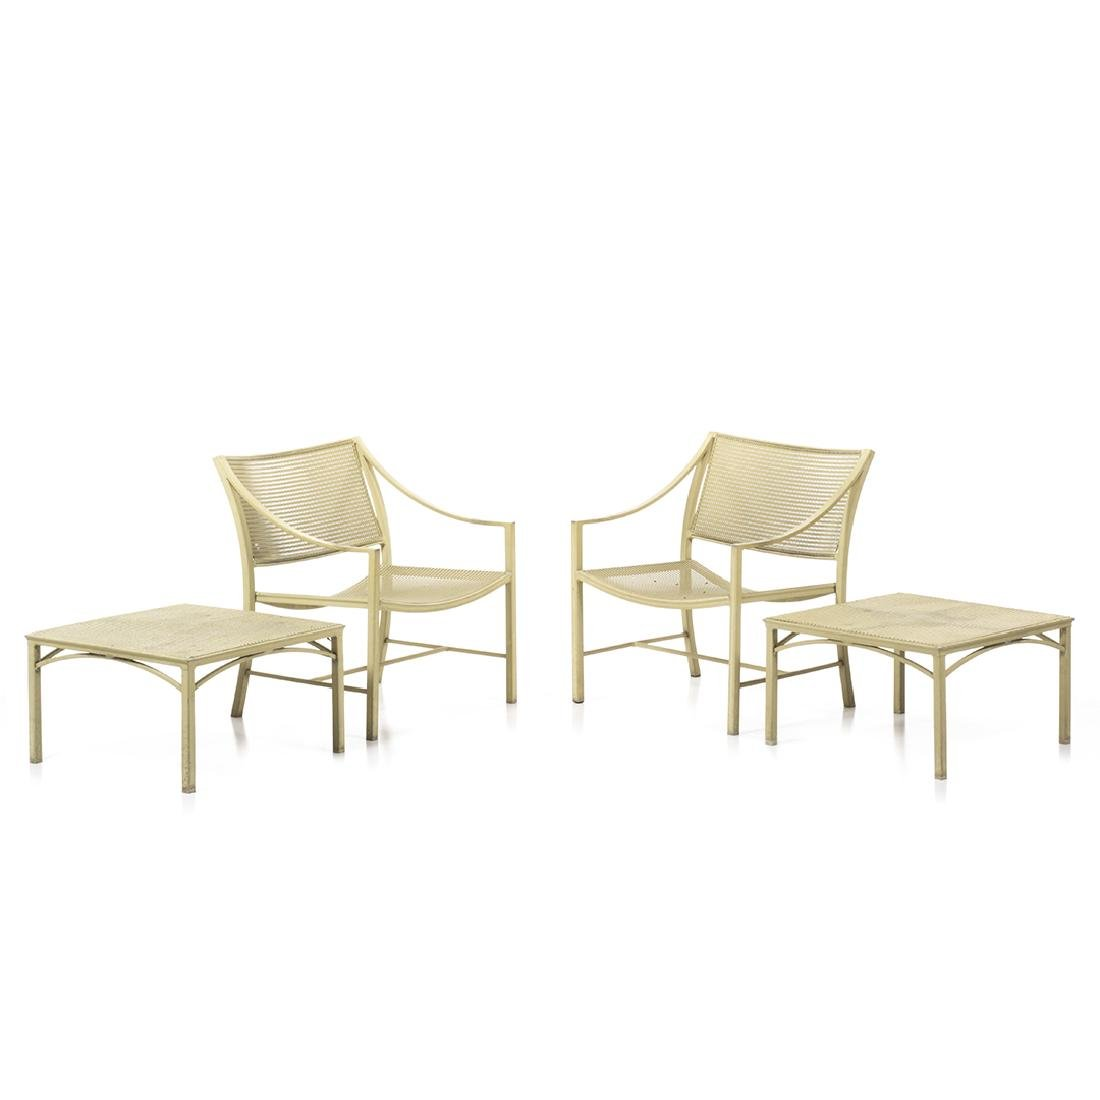 Brown Jordan Alumicane Lounge Chairs and Tables (4)